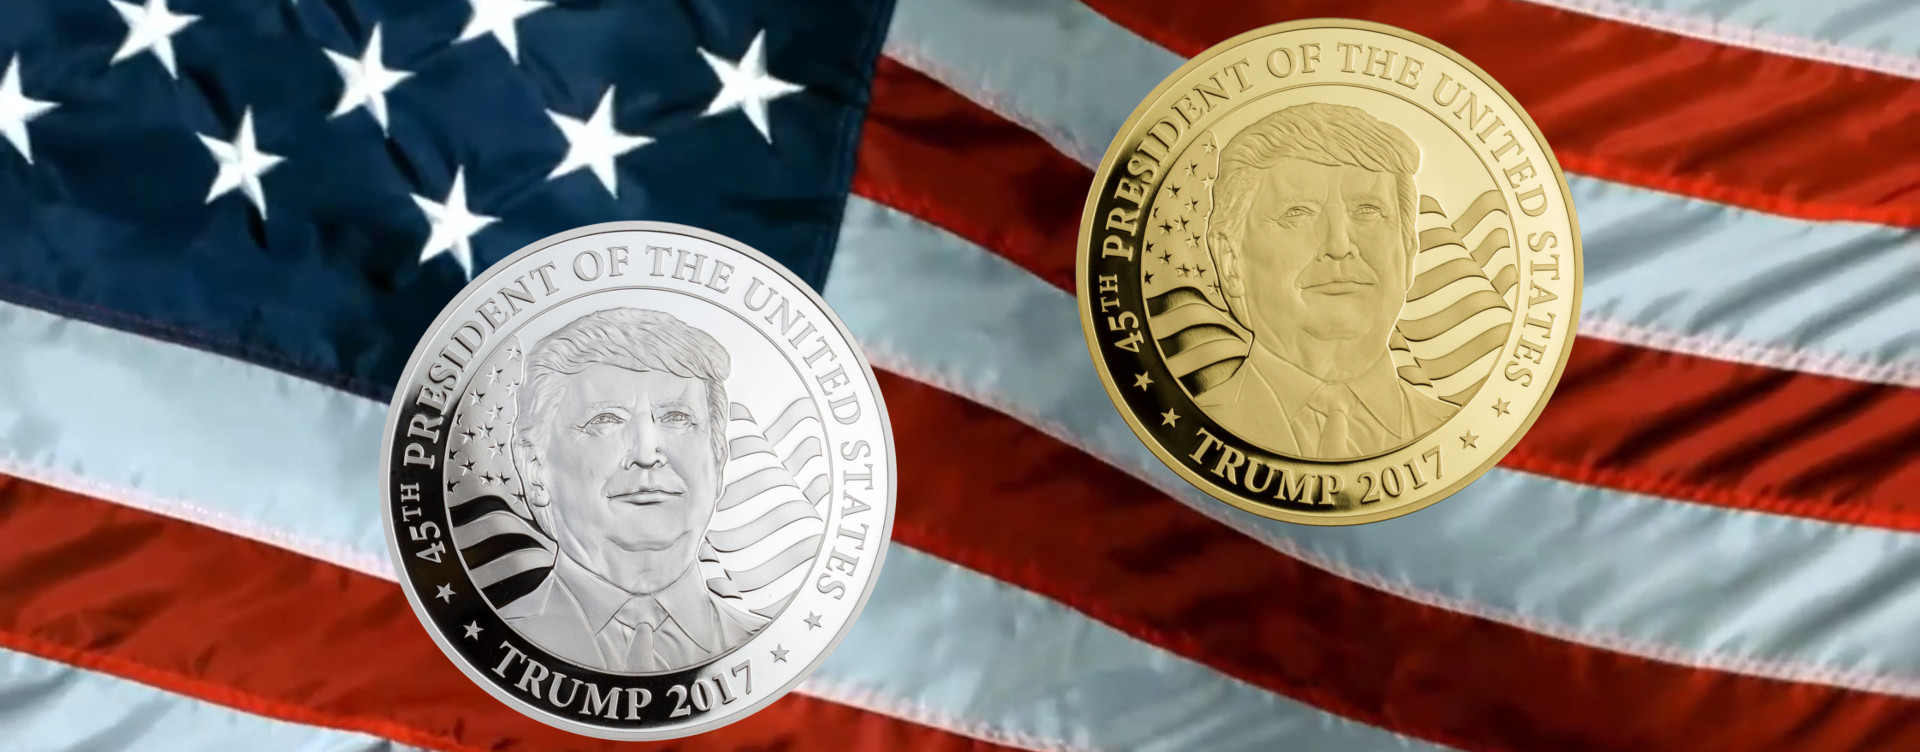 World S 1st Legal Tender Donald Trump Coins World